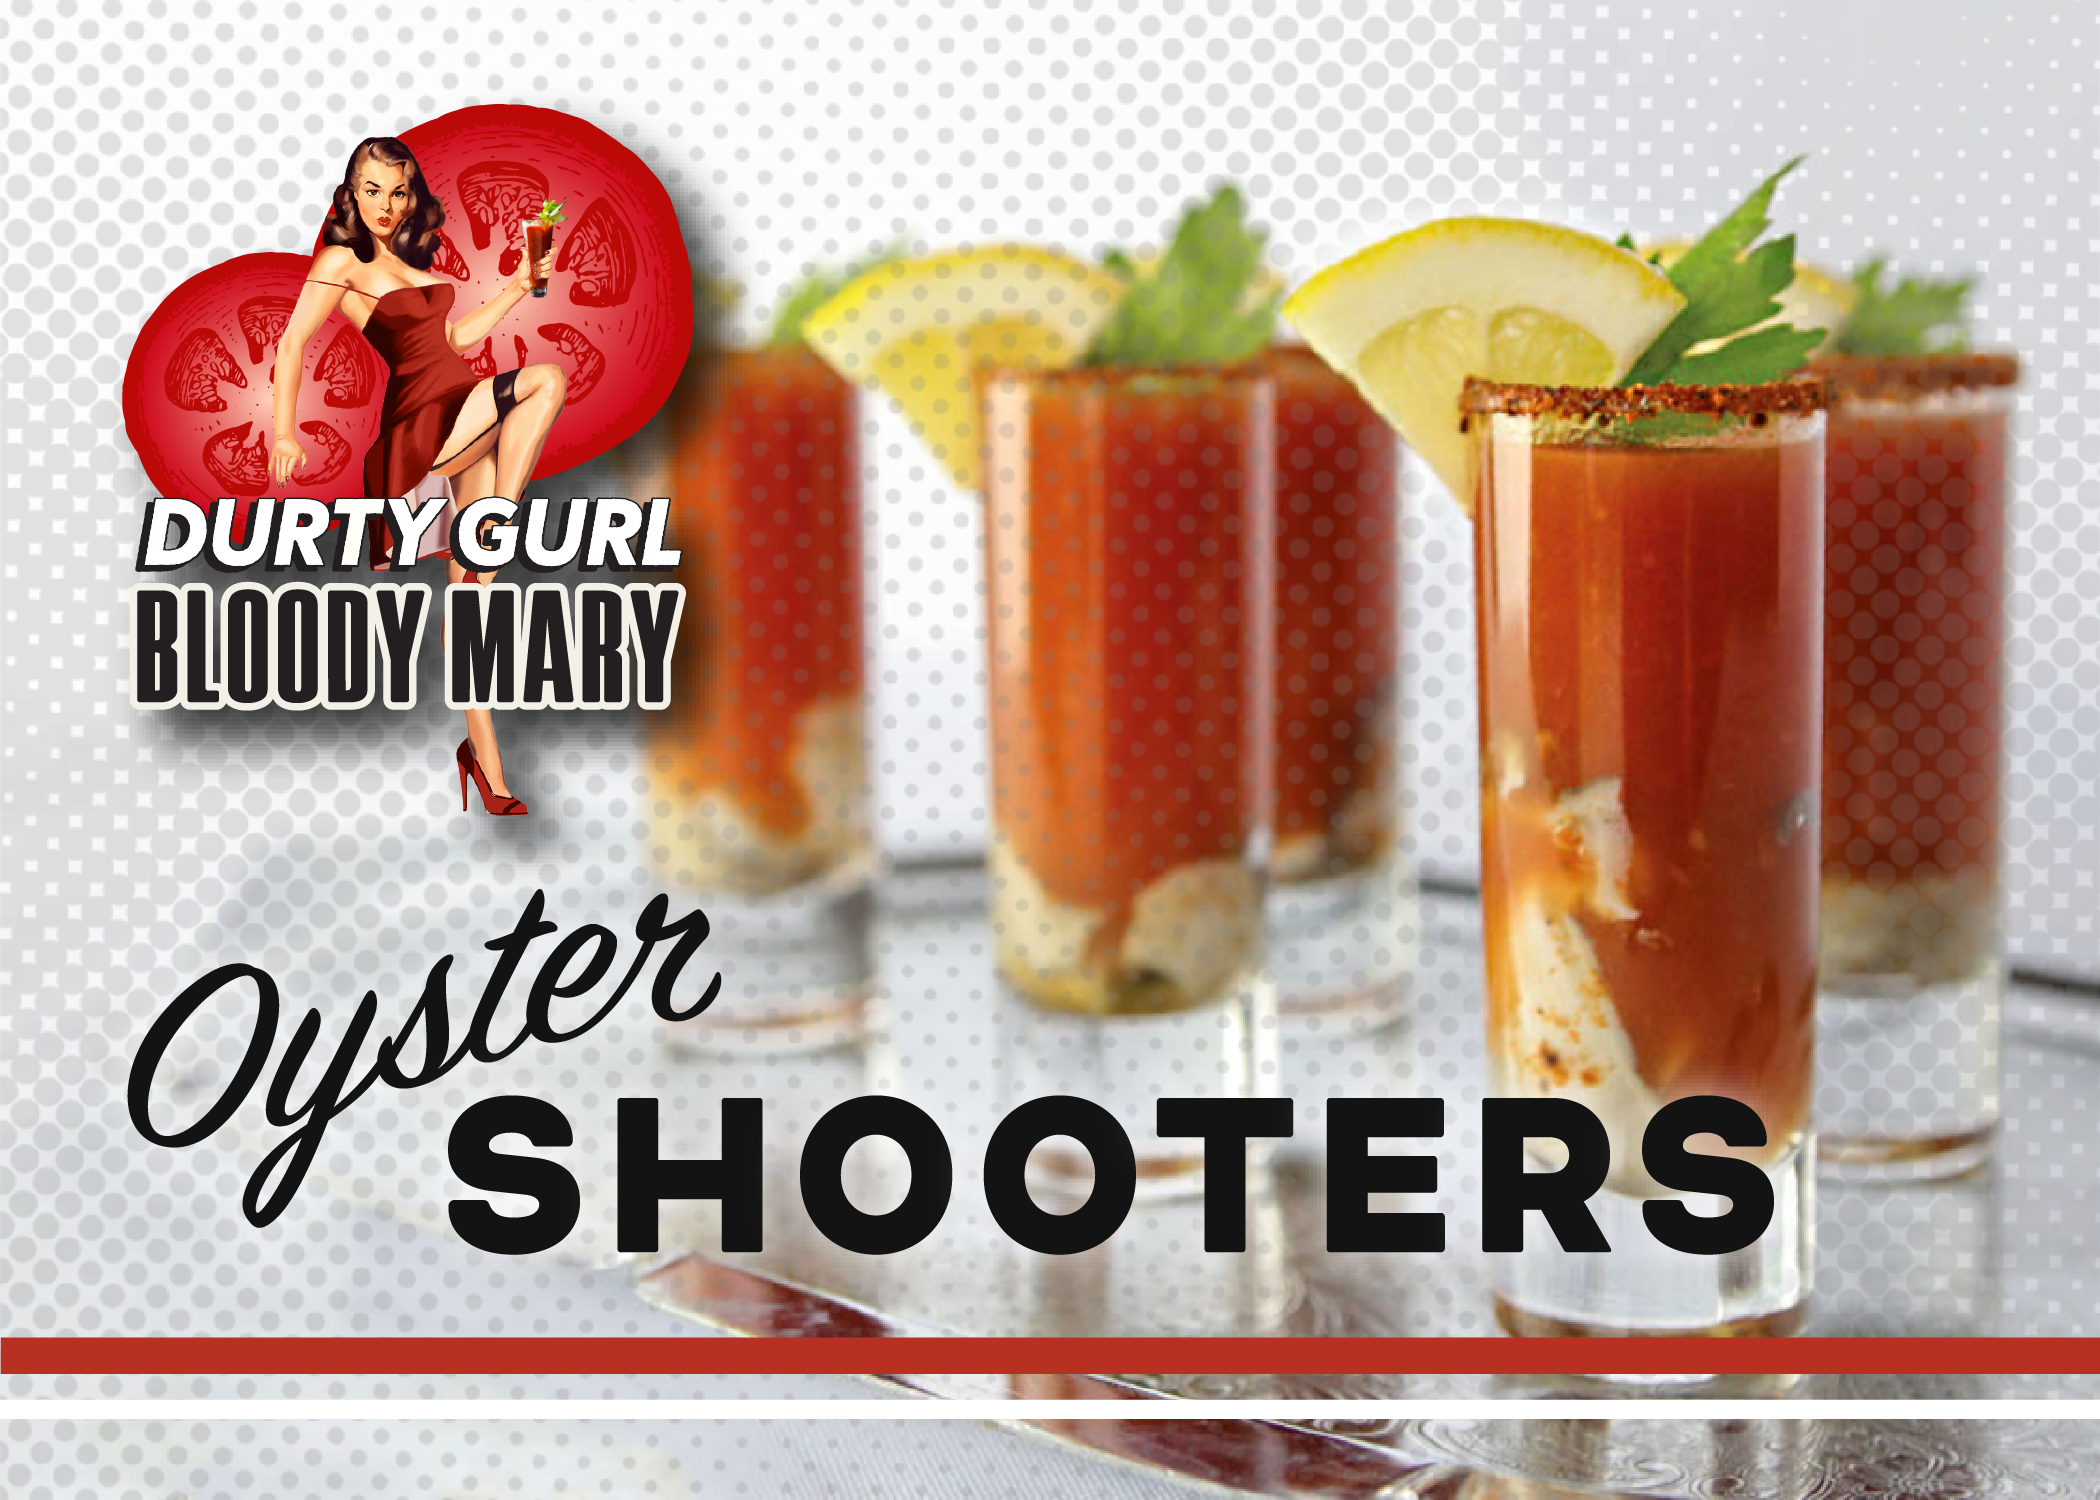 OysterShooters-01.png